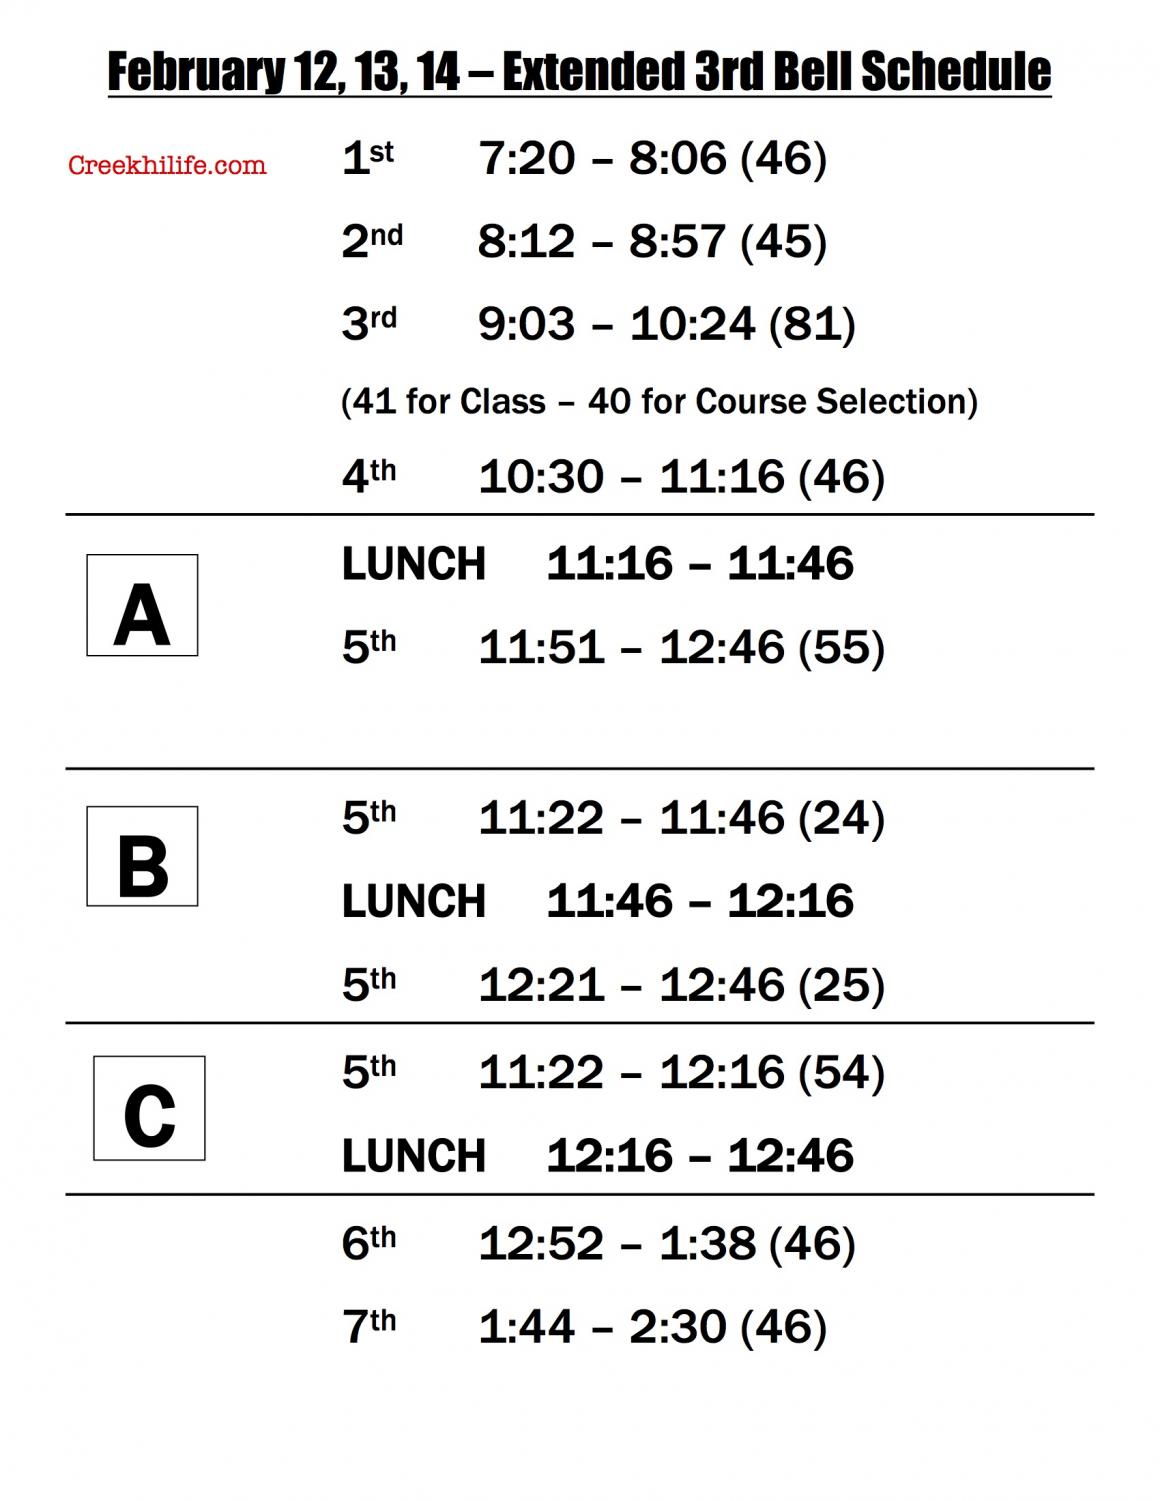 Course selection schedule